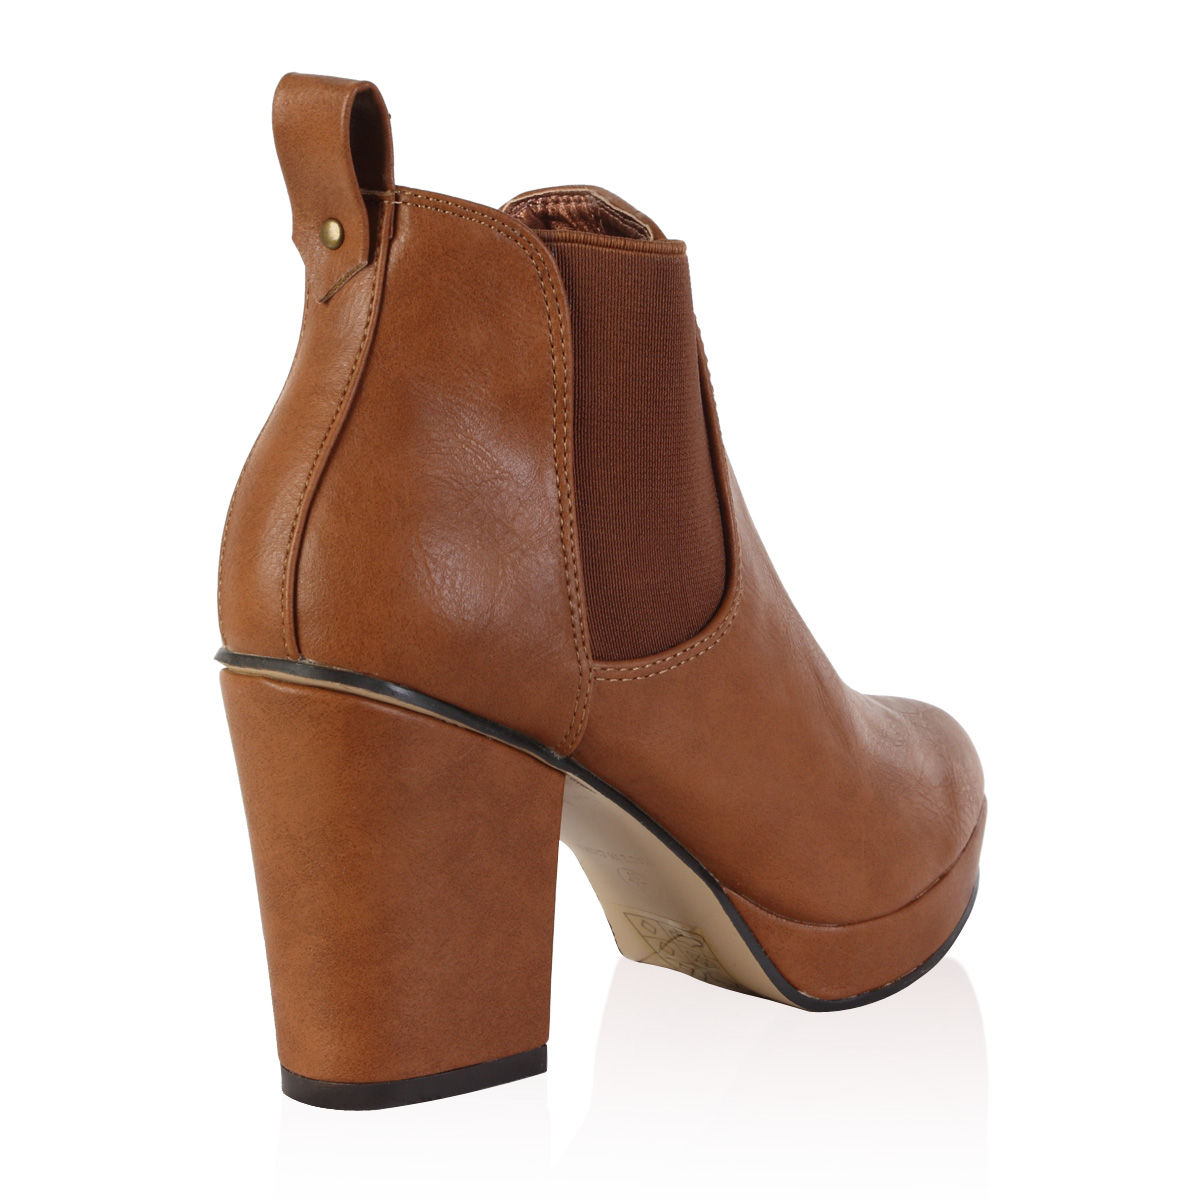 Elegant View All Boots  View All Ankle Boots  View All Chelsea Boots